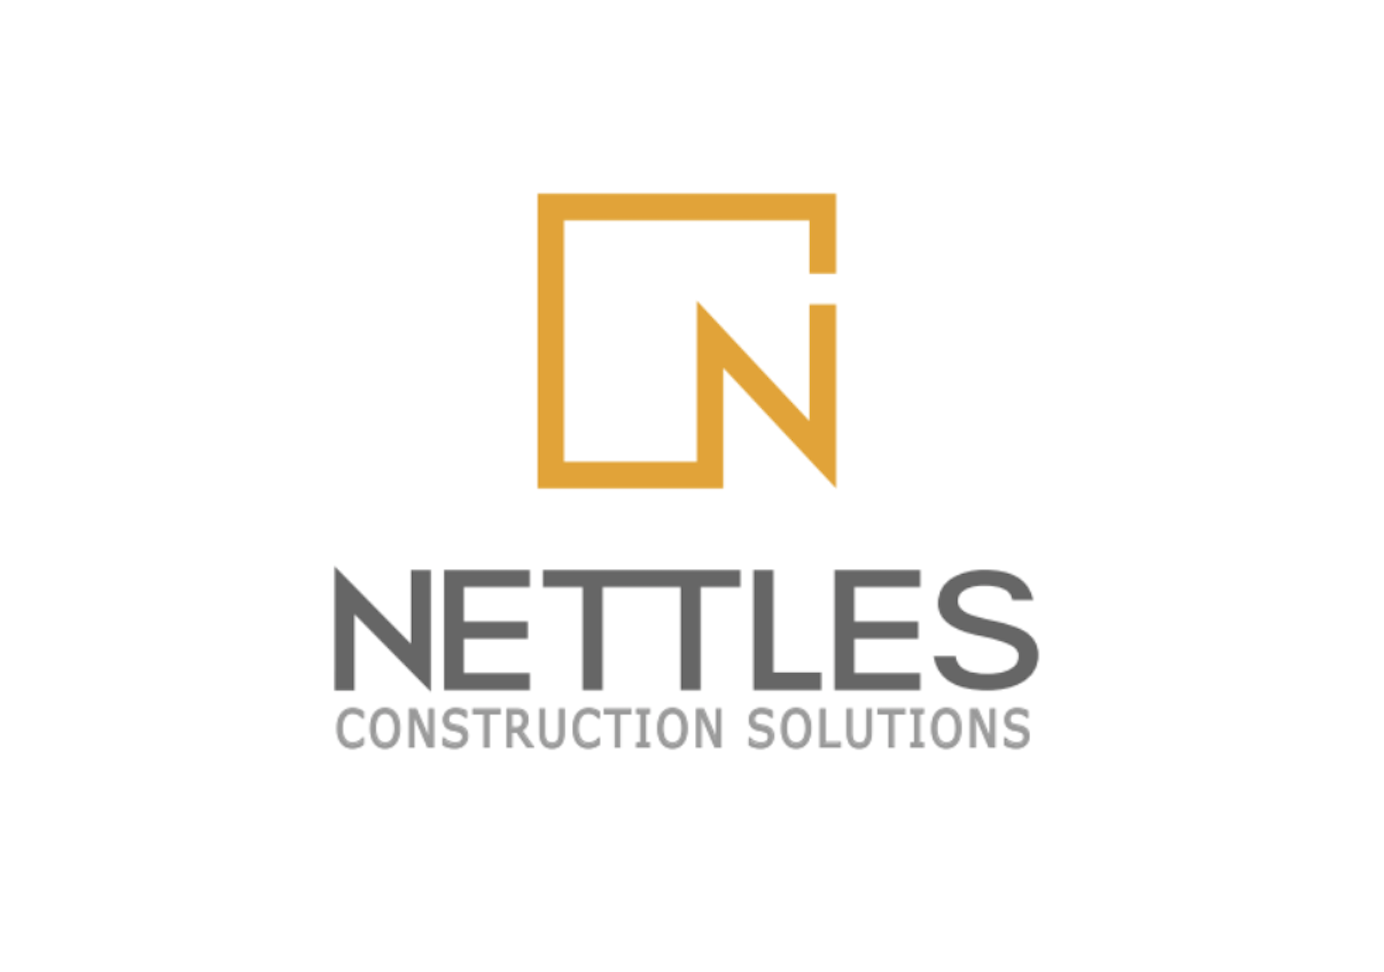 GL Nettles rebrands - Nettles Construction Solutions